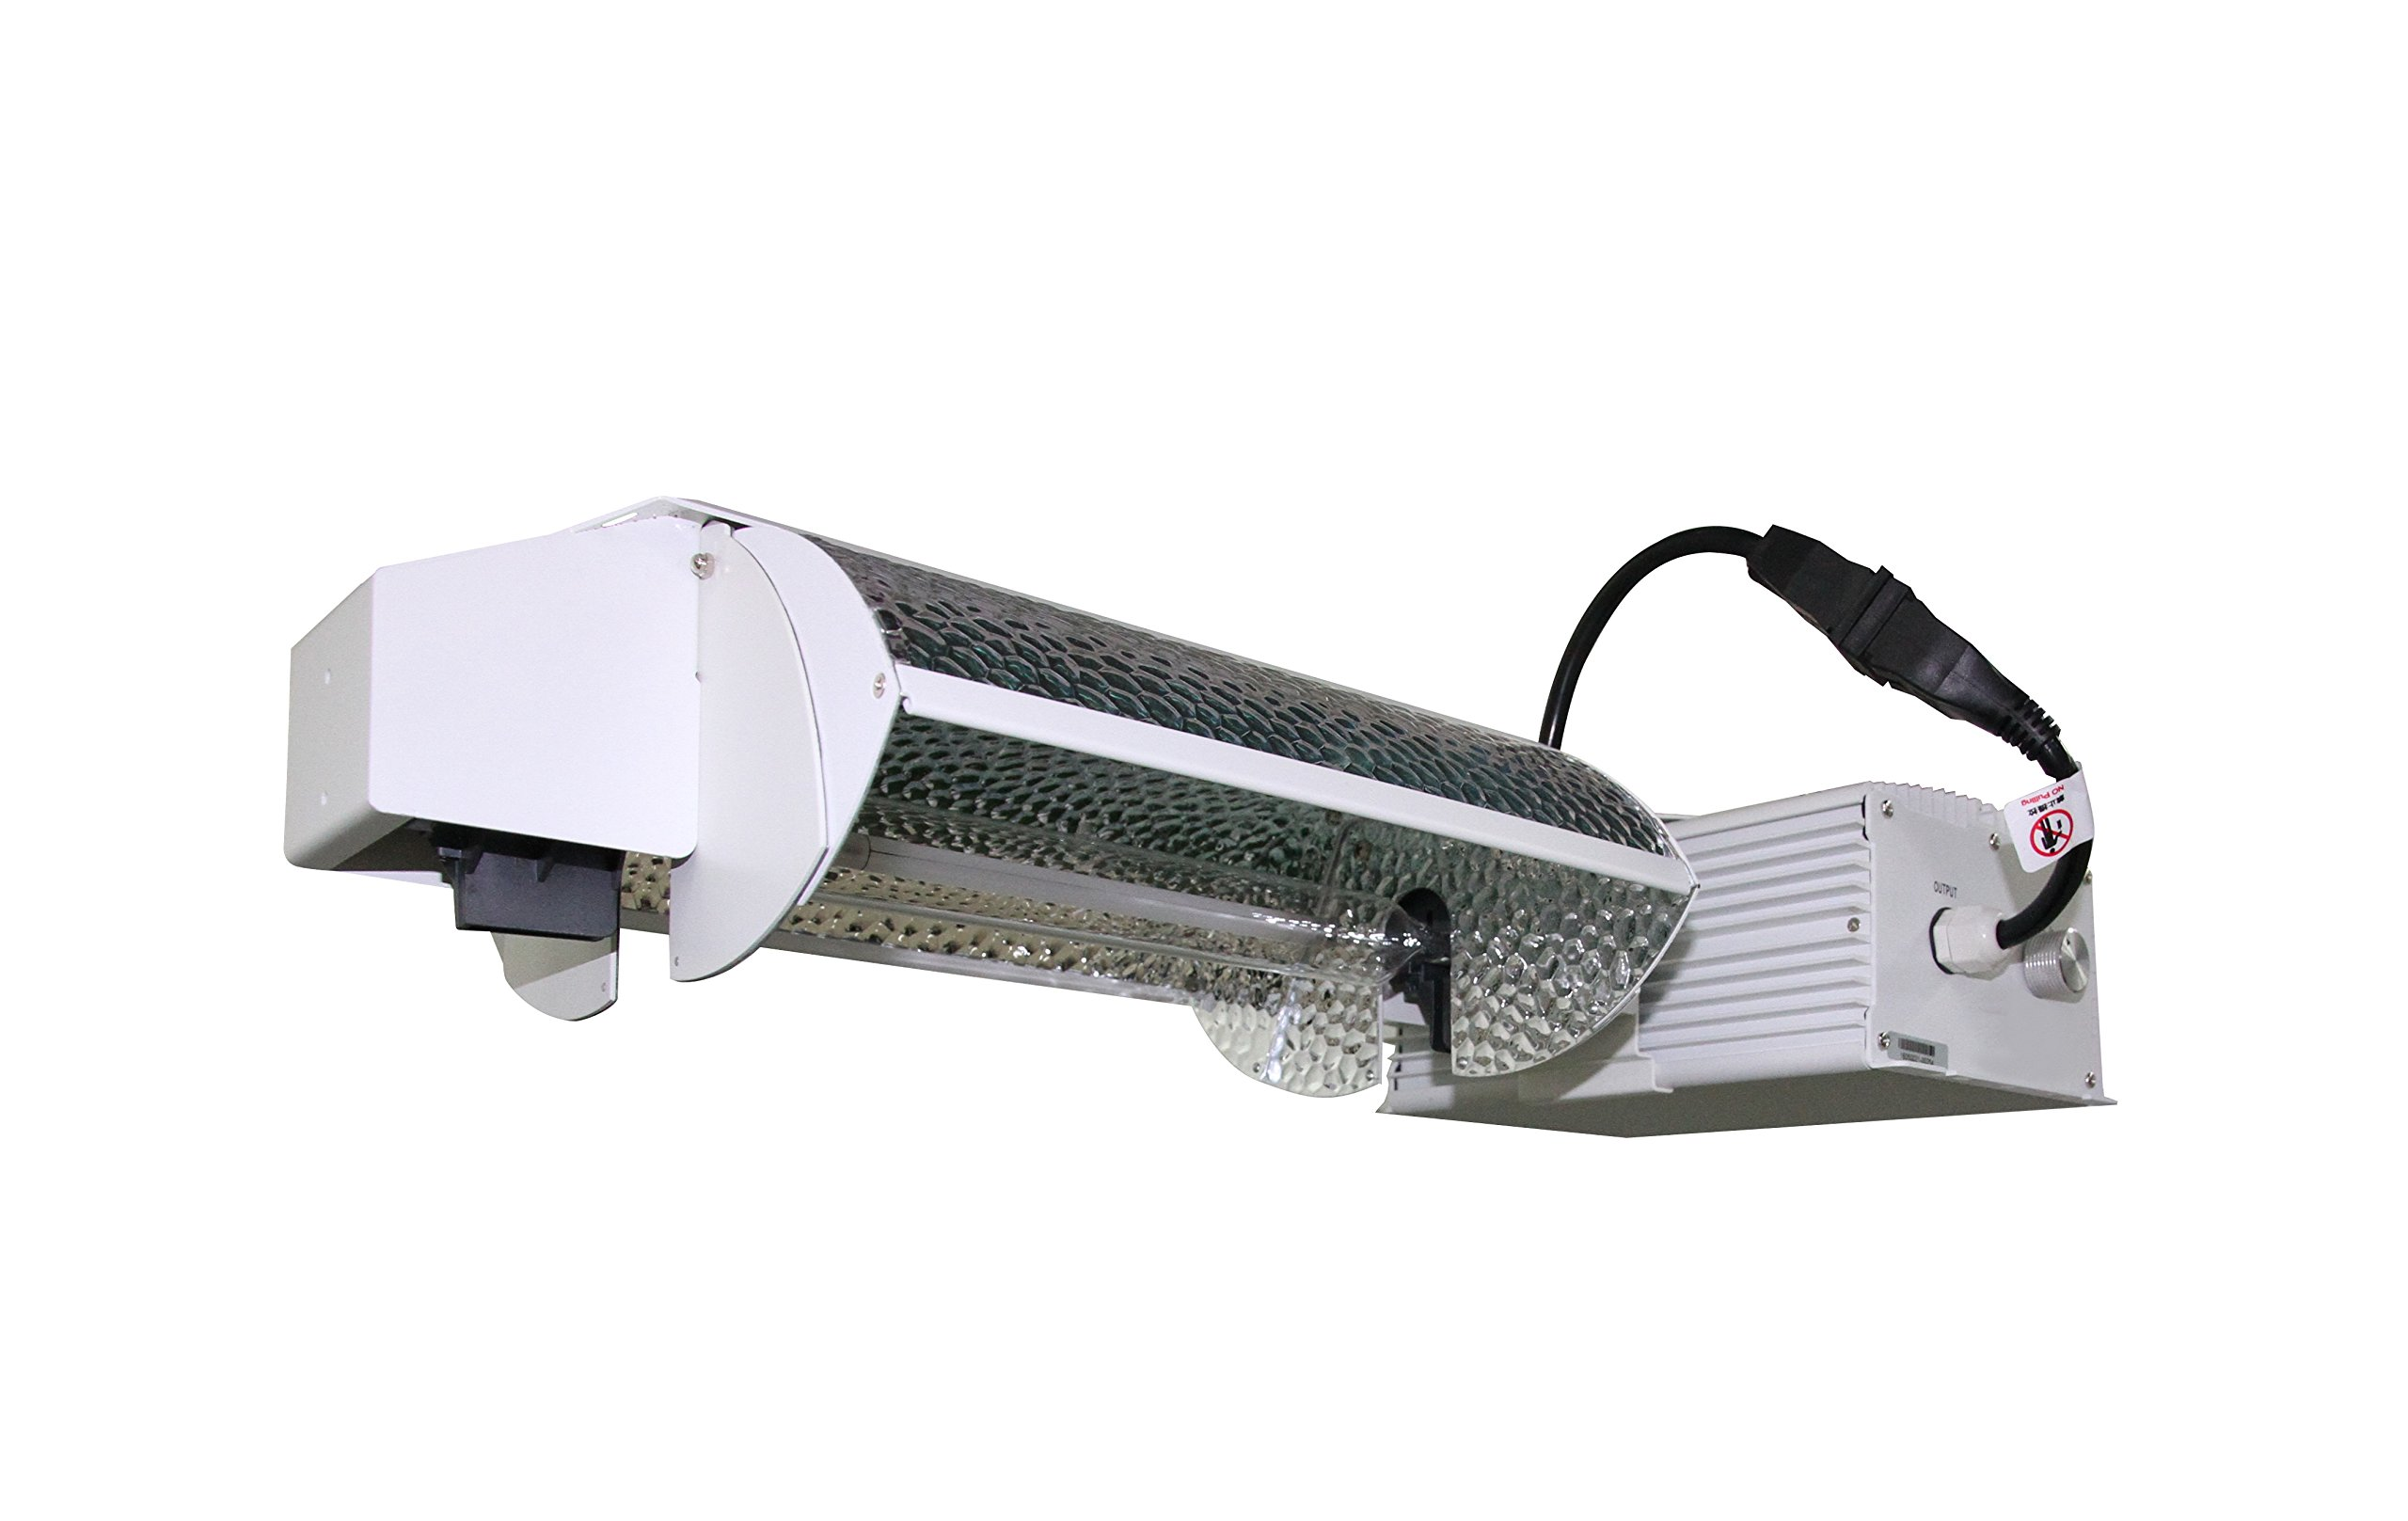 Eagle Bath SH303833-W Sonic Hydro 1000W Dimmable De Lamp Grow Light W/Integrated 3-Mode Adjustable Reflector with Ballast 240V/277V